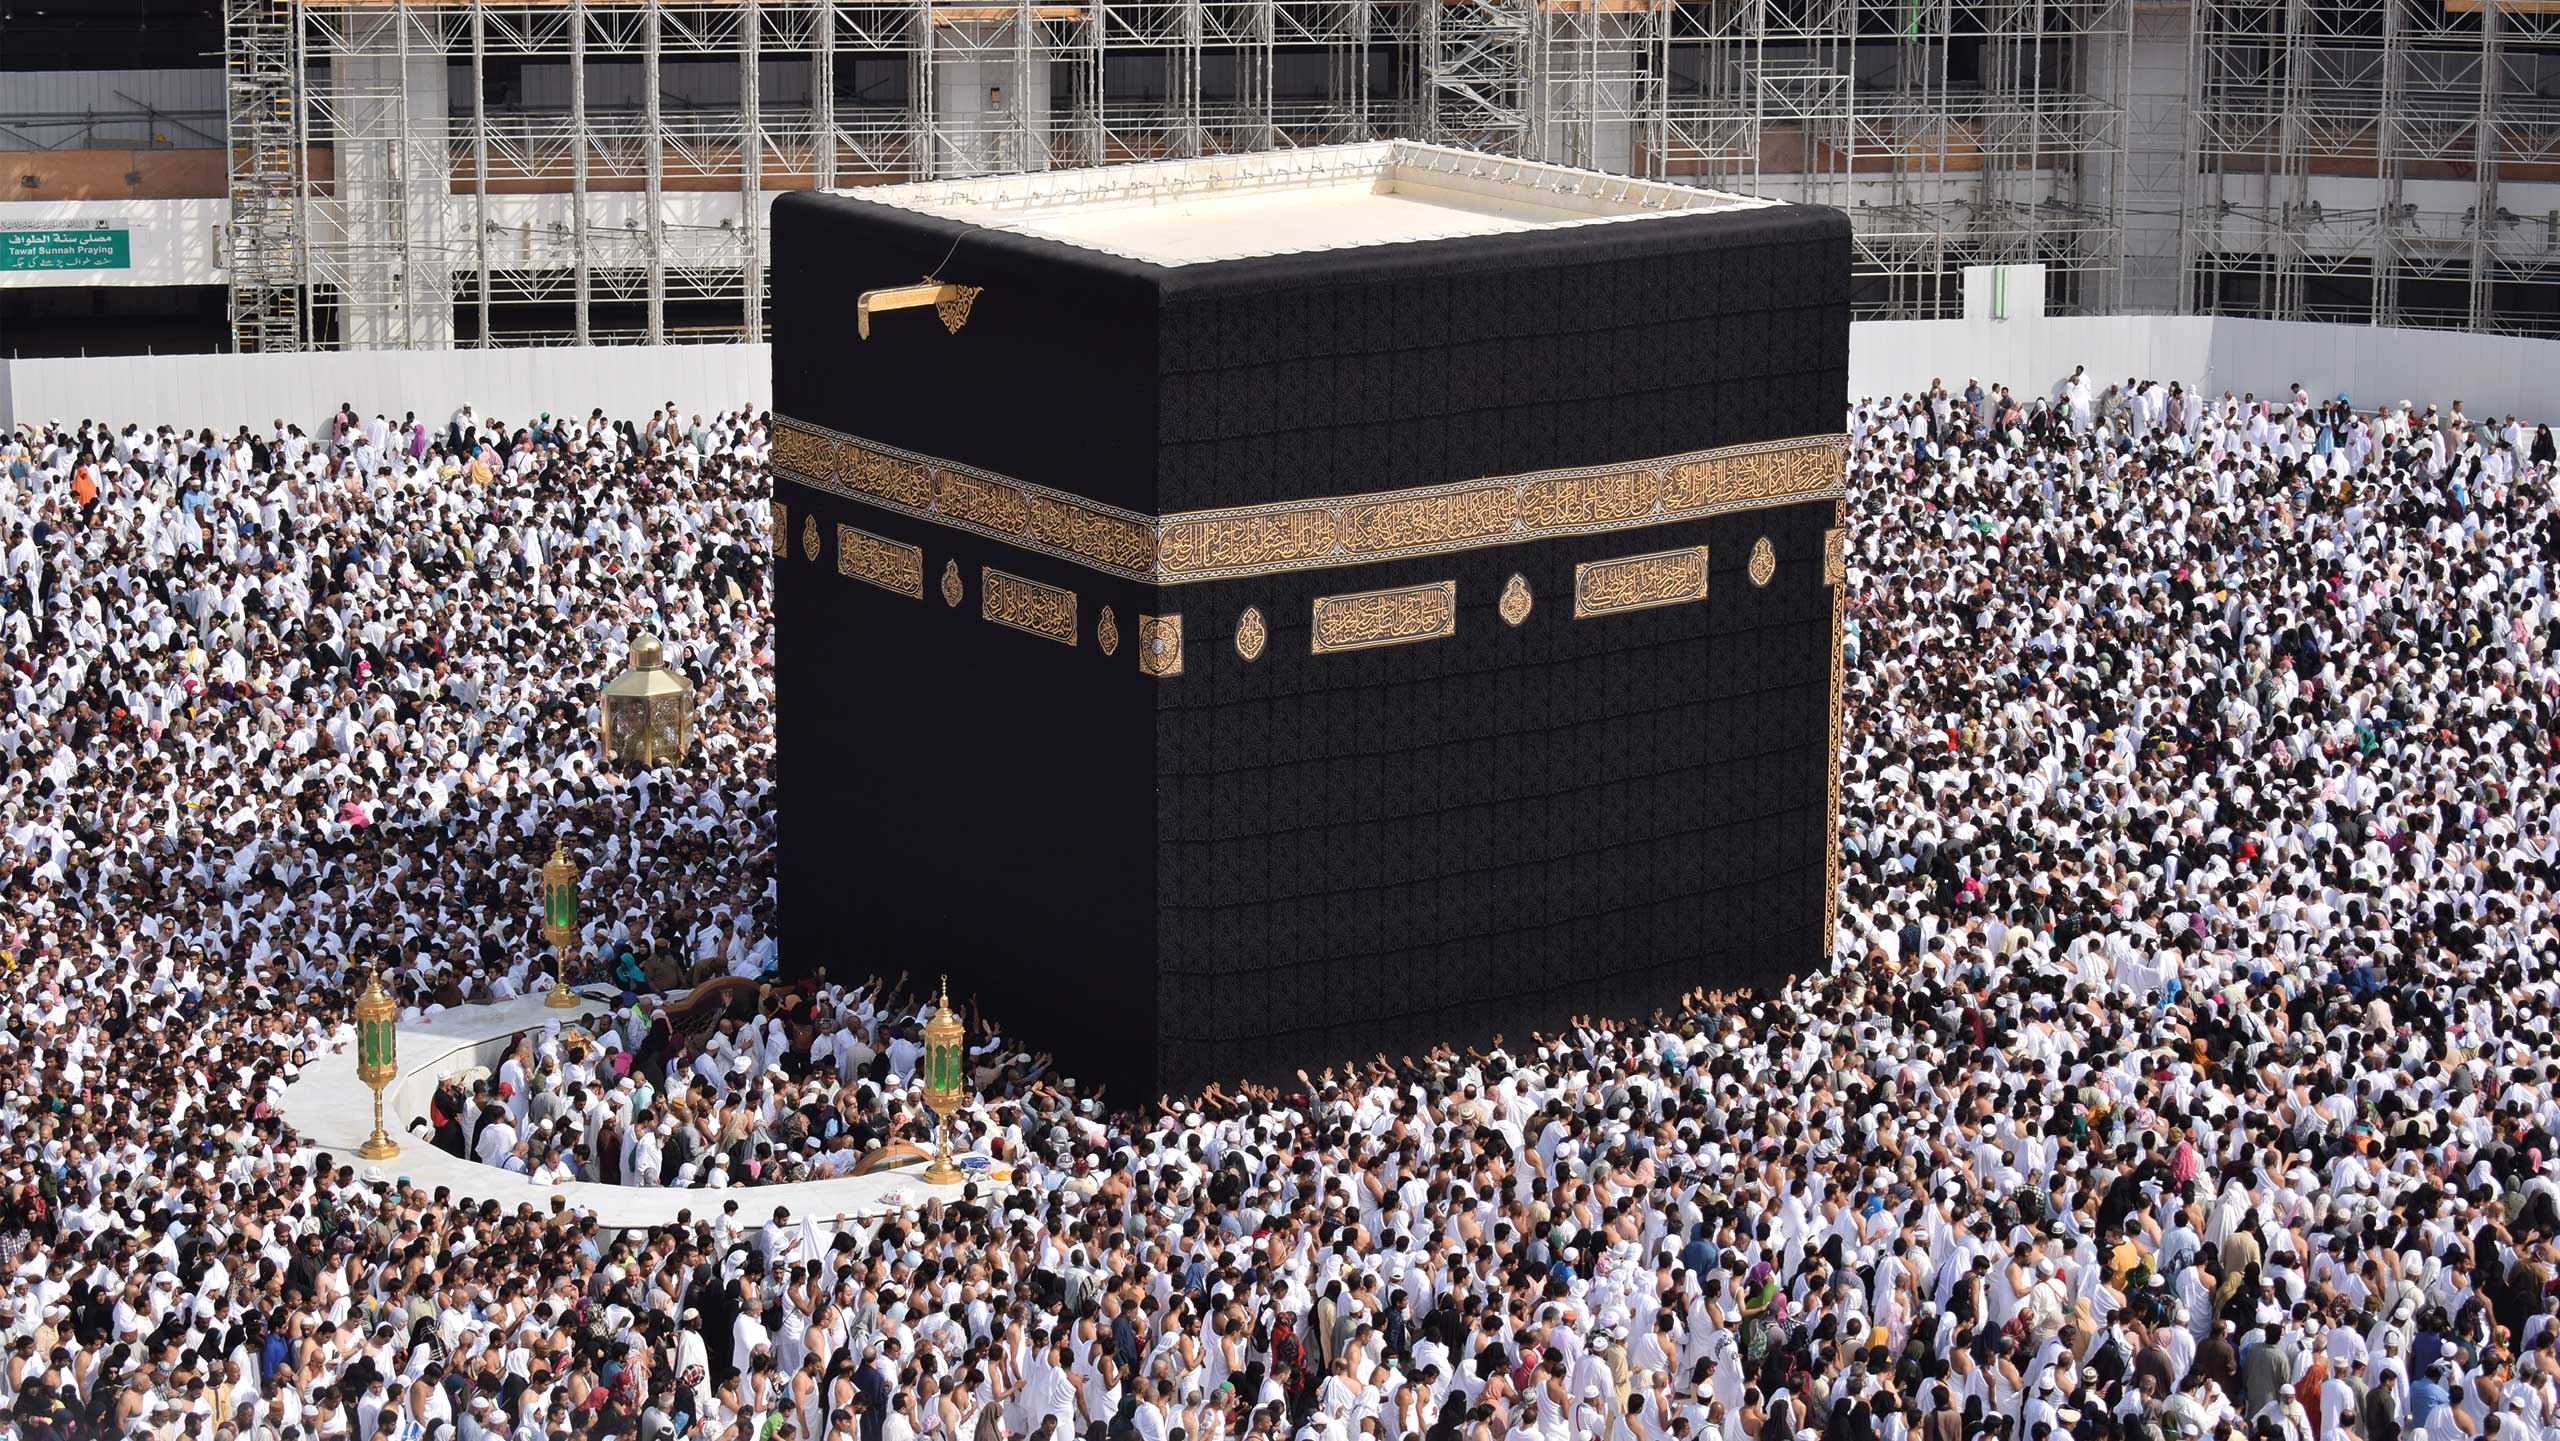 image of the kabah with pilgrims doing tawaaf